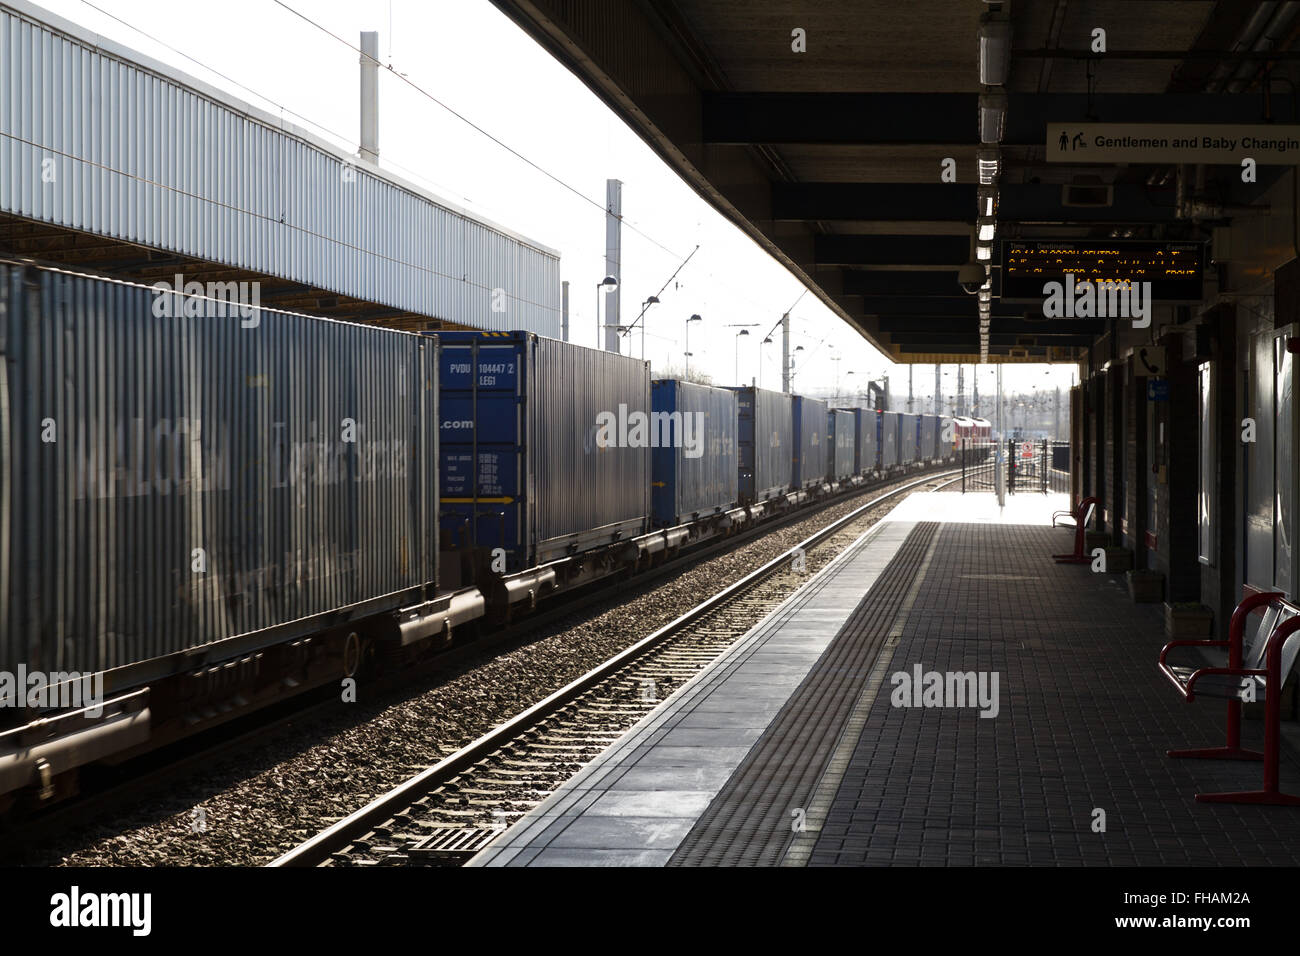 DB Schenker Container Freight Train at Warrington Bank Quay hauled by Electric Locomotives Stock Photo